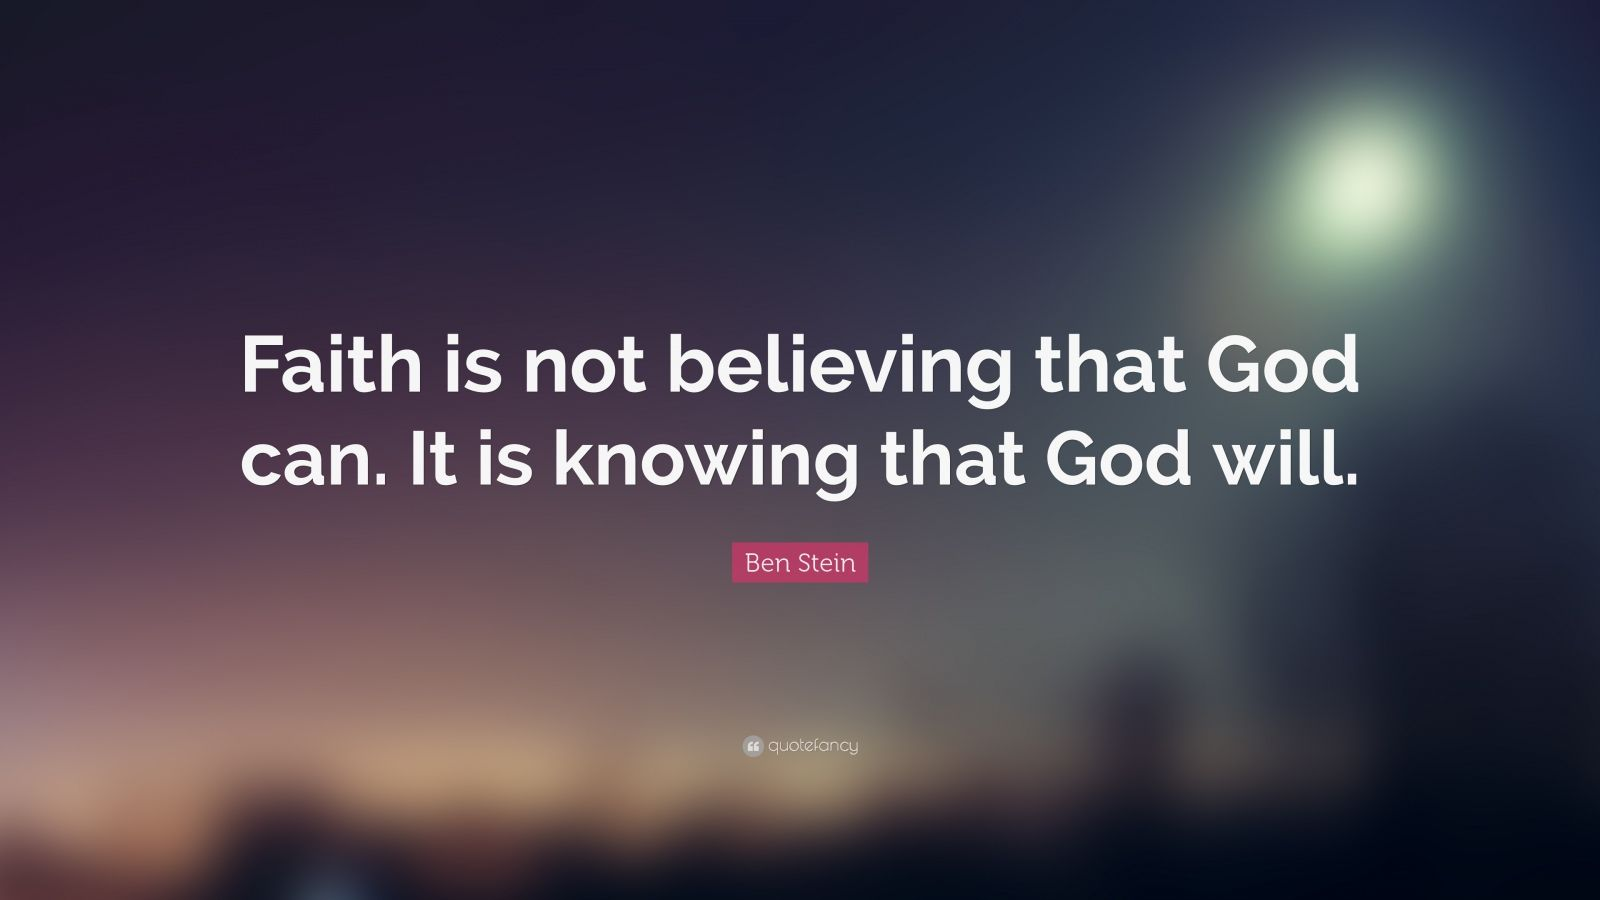 Nick Vujicic Quotes Wallpaper Ben Stein Quote Faith Is Not Believing That God Can It